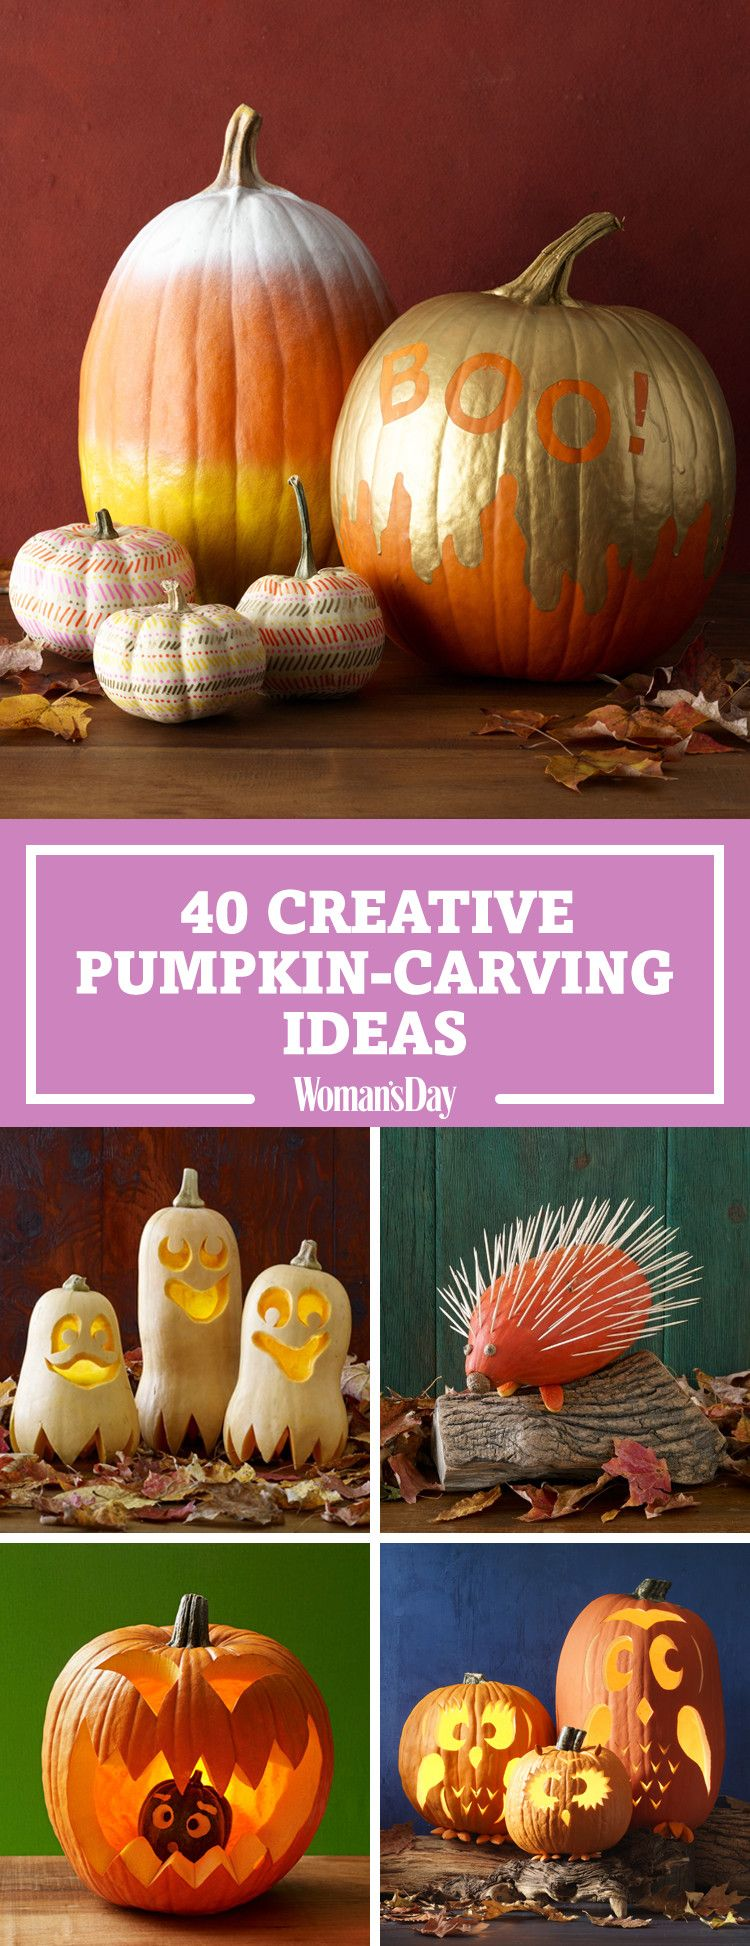 65 best pumpkin carving ideas halloween 2017 creative jack o lantern designs - Unique Pumpkin Carving Ideas